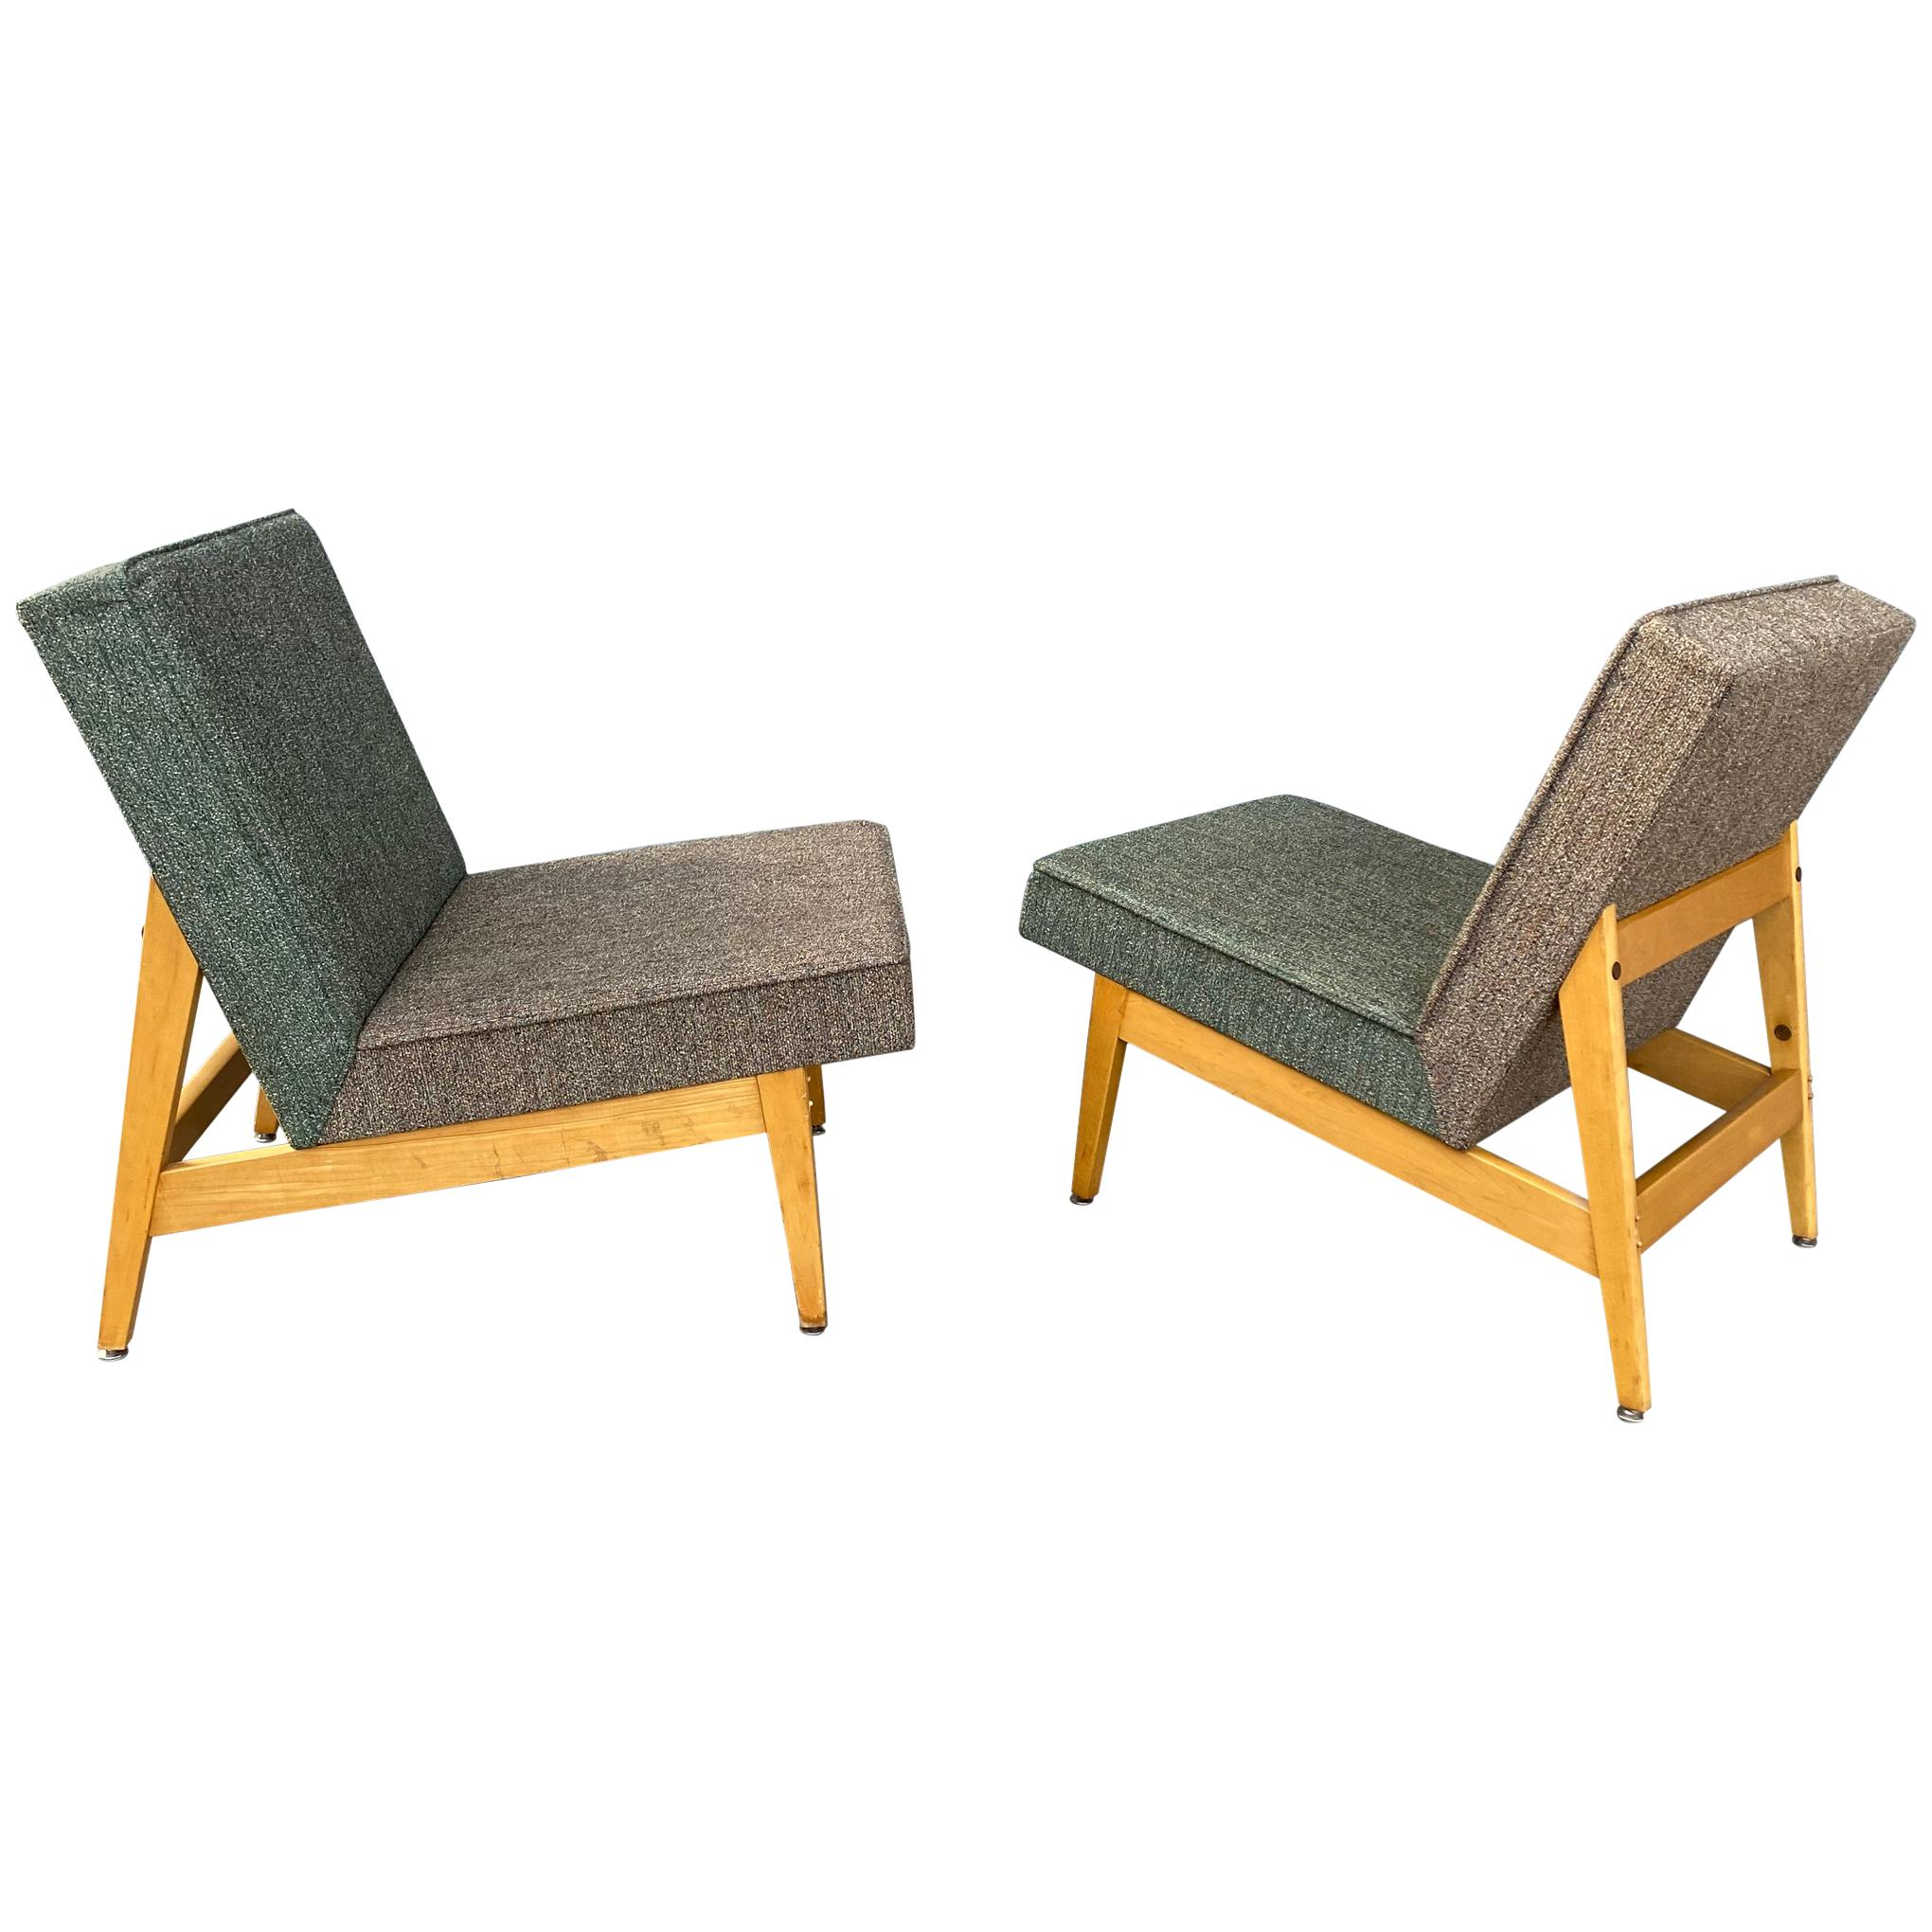 Stunning Pair of Modernist Lounge Chairs Made by Gunlocke, Manner of Jens Risom